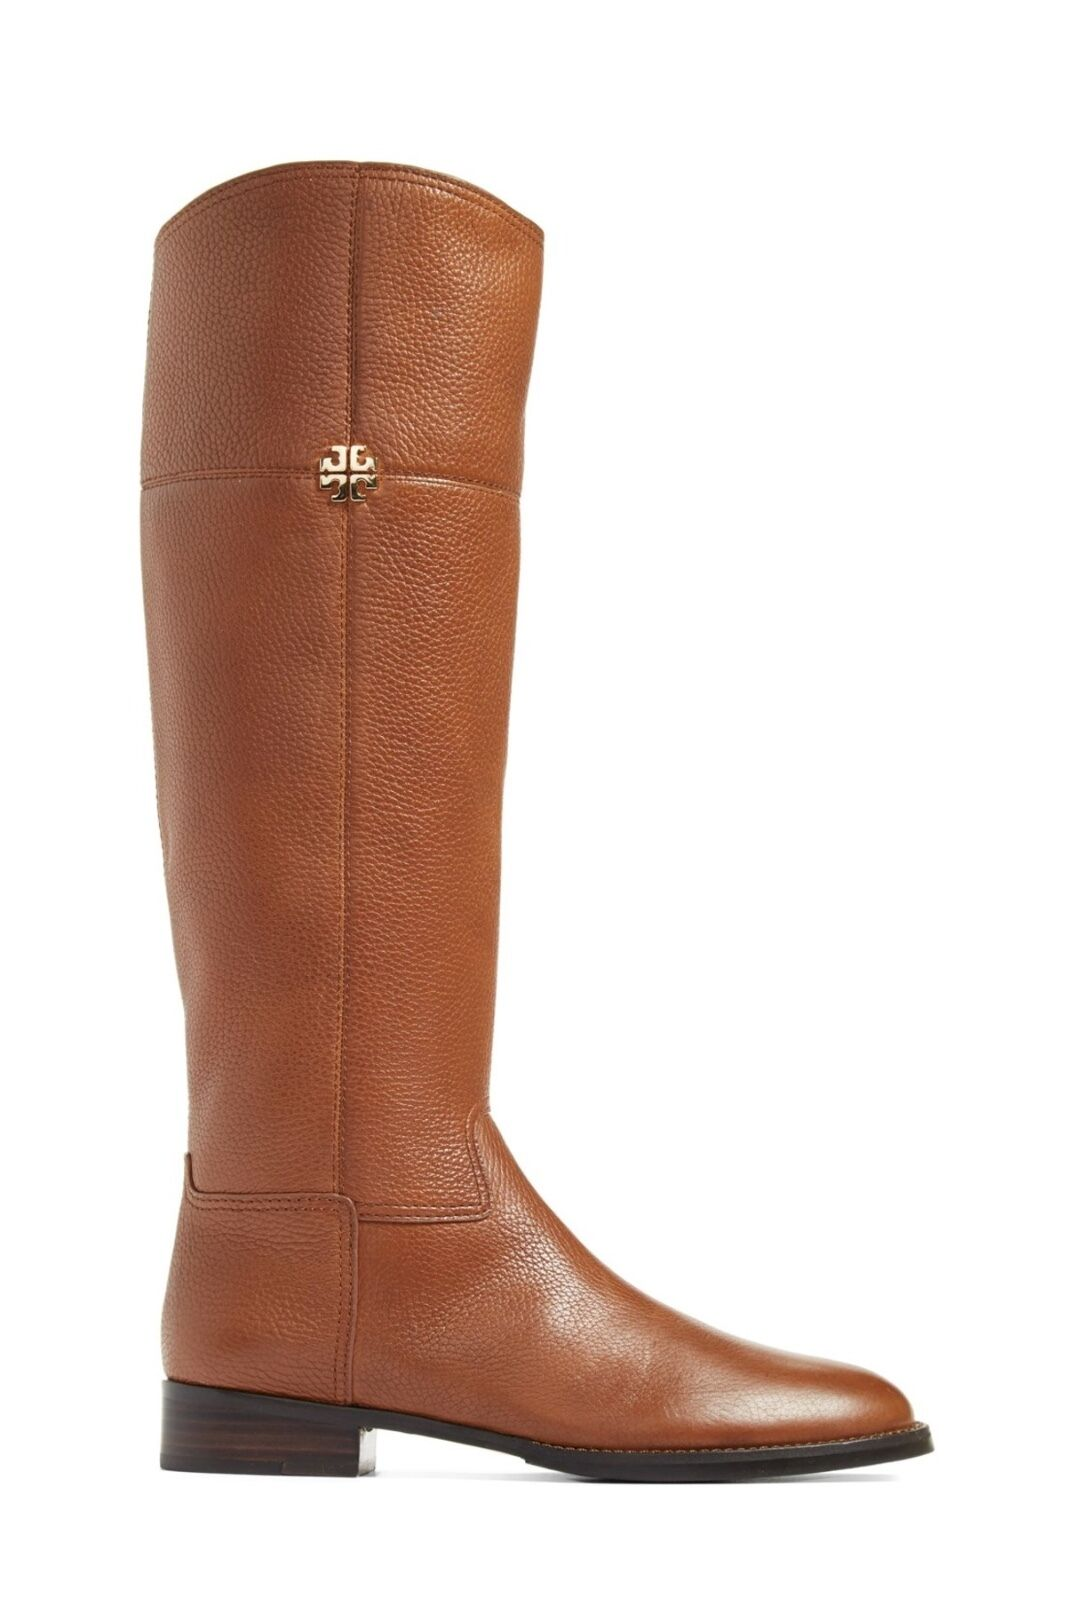 Tory Burch Women's Leather Leather Leather Jolie Riding Boots Rustic Brown 6380 Size 10 M fb08fc